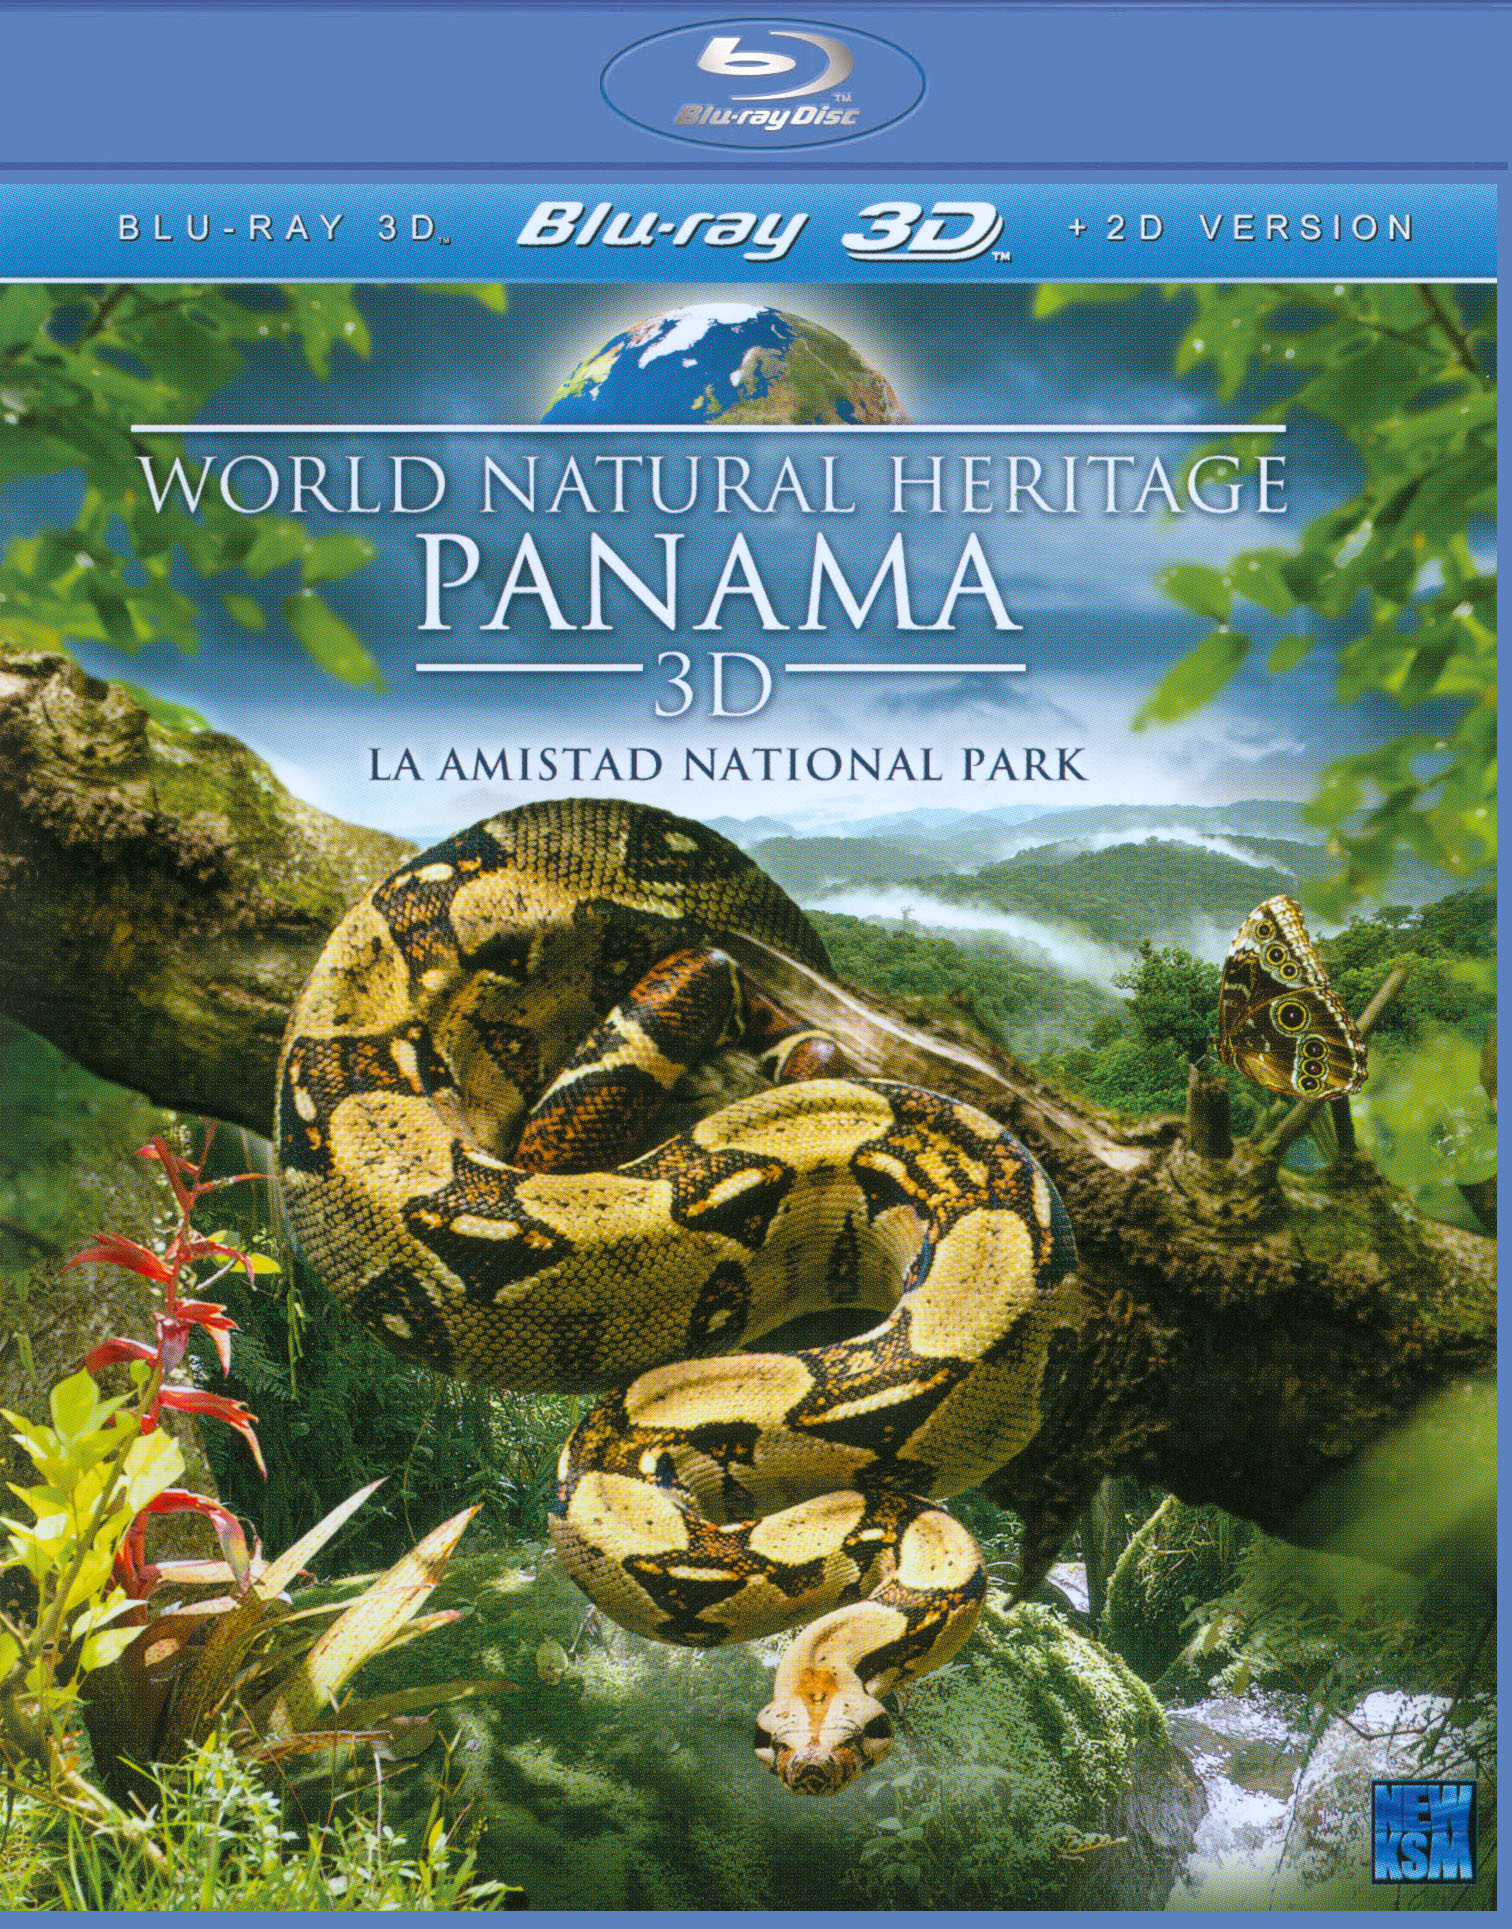 World Natural Heritage: Panama 3D - La Amistad National Park